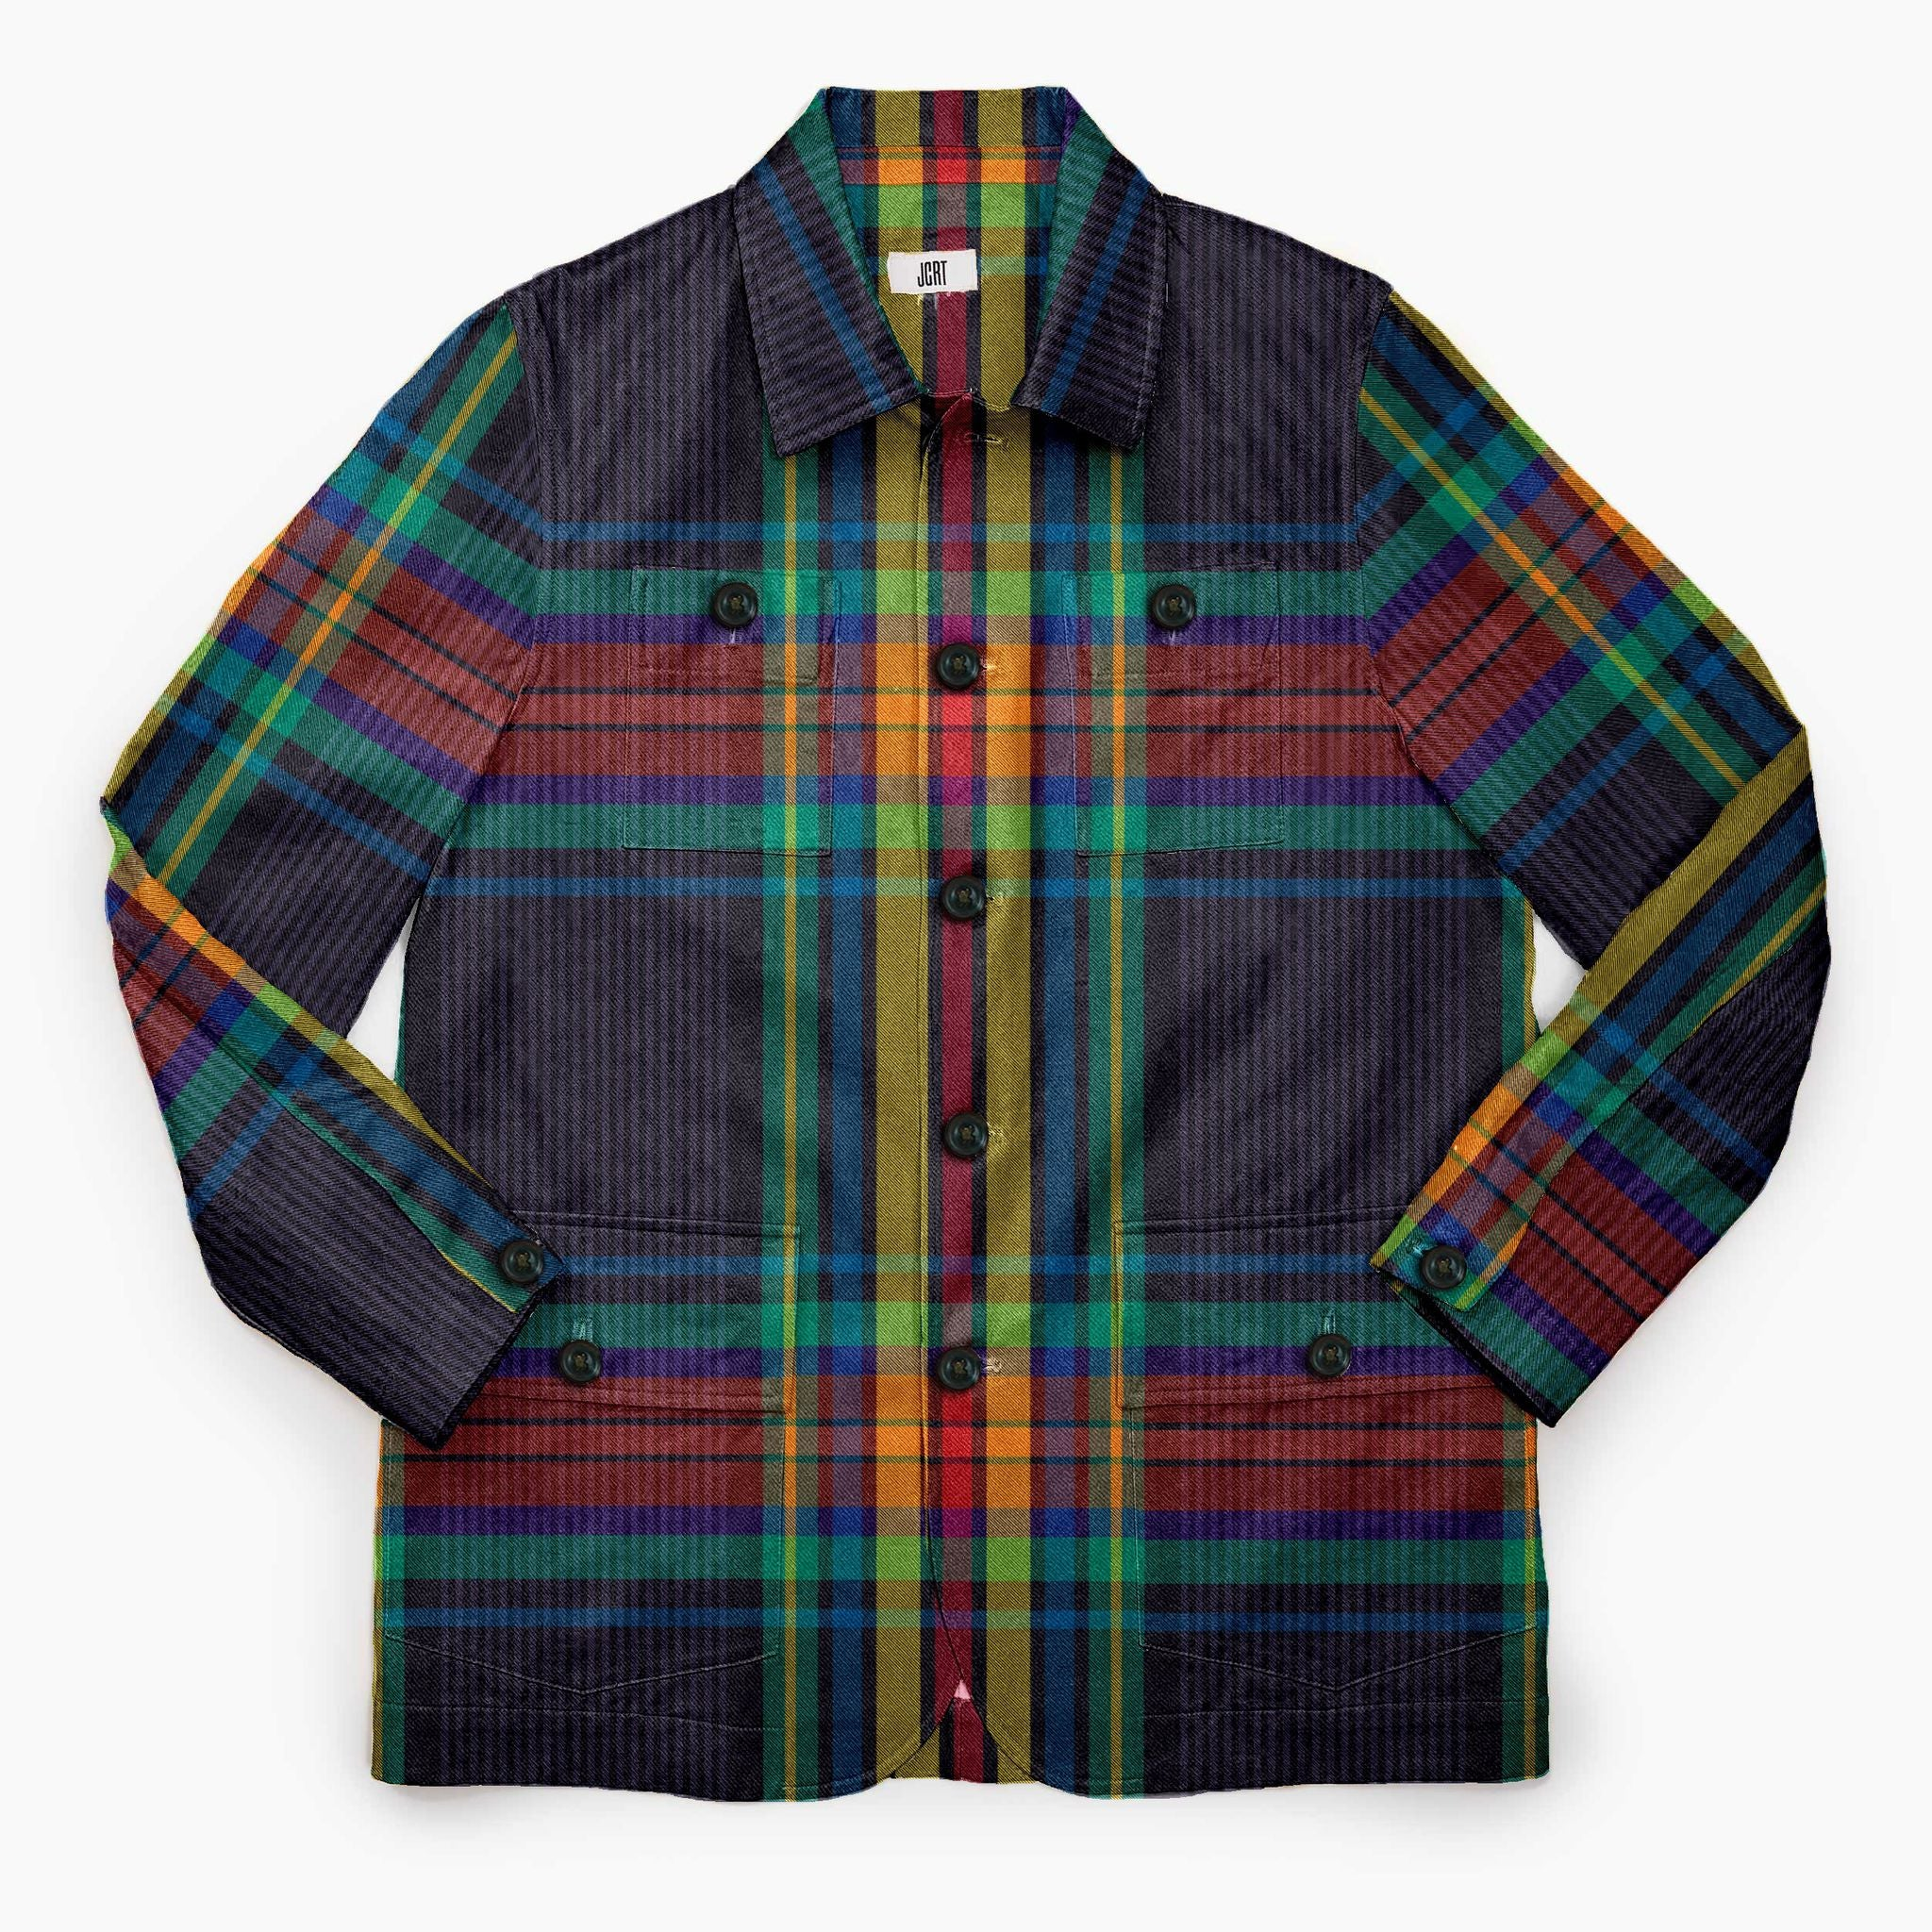 The Gala Plaid Chore Coat